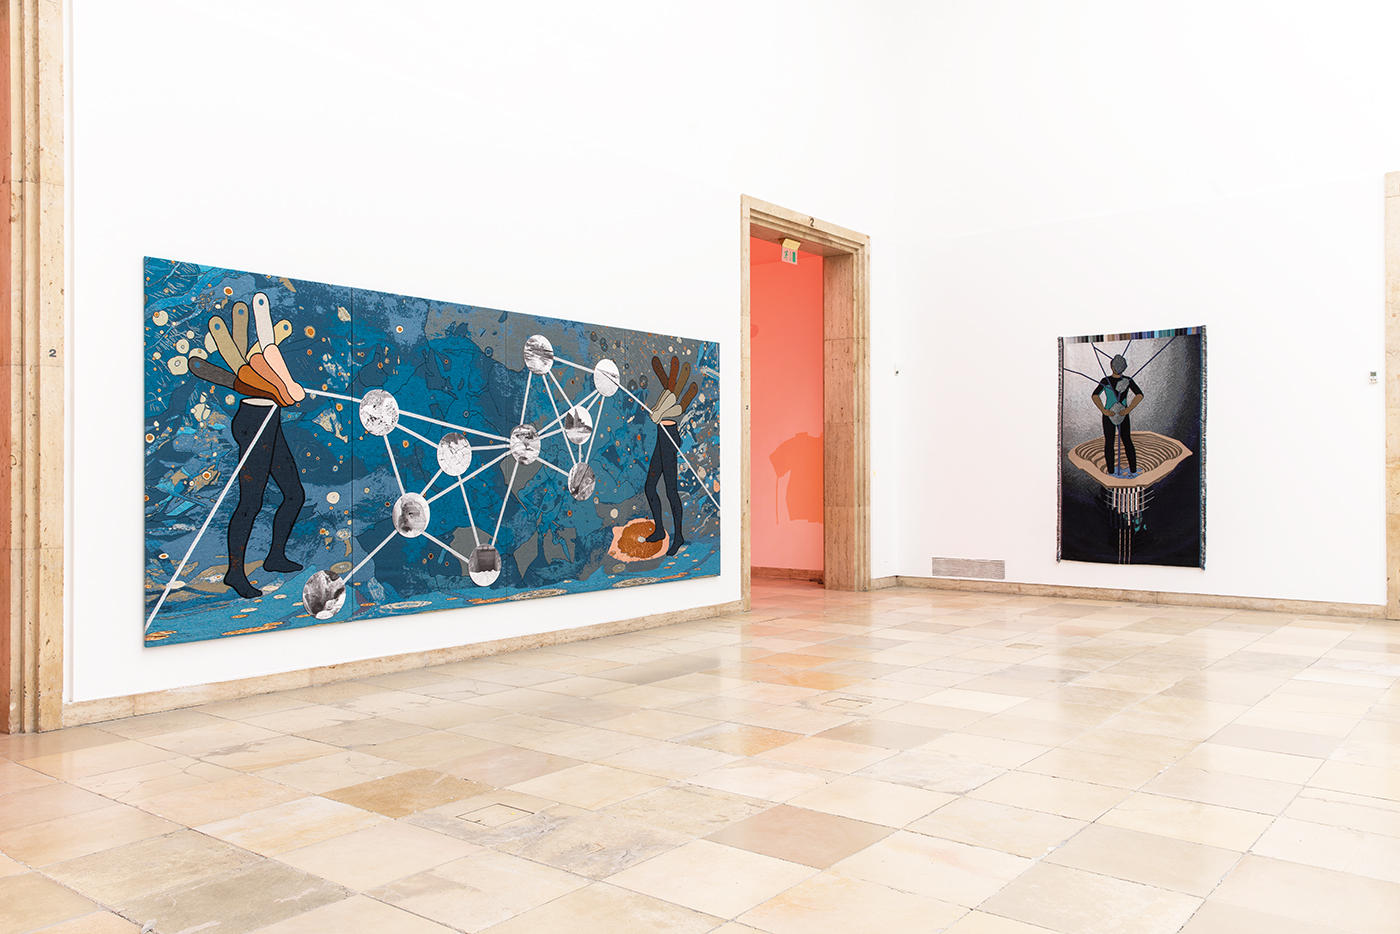 Otobong Nkanga - Exhibition view - Blind Faith : Between the Visceral and the Cognitive in Contemporary Art - Haus der Kunst, Munich, 2018